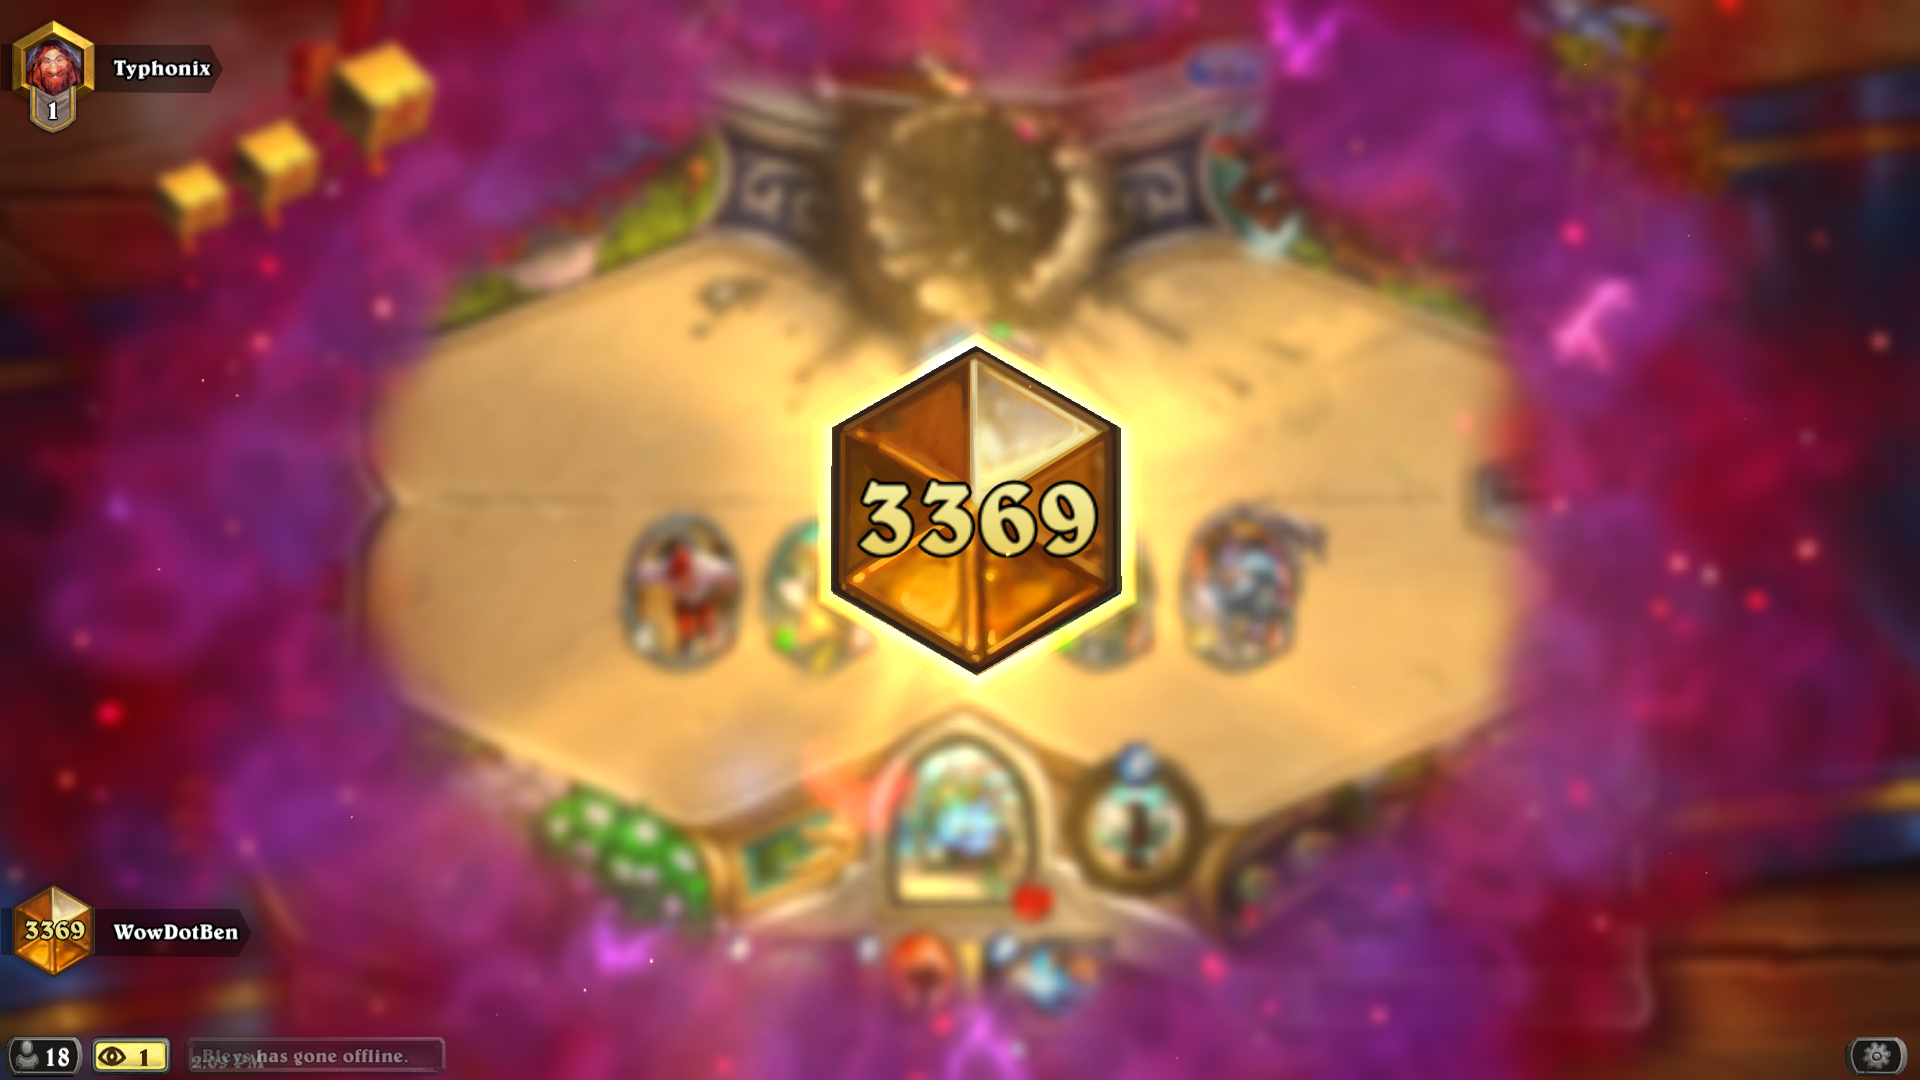 Hello,  I've been playing Heartstone since closed beta, I only played to Rank 20 for the card back. Just before the release of Wisps of the Old Gods I started playing more and more and my goal was Rank 5 every month. My highest rank was Rank 1, 2 stars which happened with Zoo just after the release of Wisps. I continued to get between ranks 5 and 1 then kinda got burnt out. I started listening to more podcasts, including this one and just worked on getting in the games. This month I went from a #DadLegend (I run the discord) to a #Legend player thanks to the help of another discord, #ThisTimeLegend.   I agree with what others have said, if you can get Rank 5, (Top 2%) you can get legend. It just about getting in the games. You are playing against the top .25% - 2% of players. It took me 448 games to get from Rank 18 to Legend.  Again, Thank you for the show and all that you do. You can get there Dan!